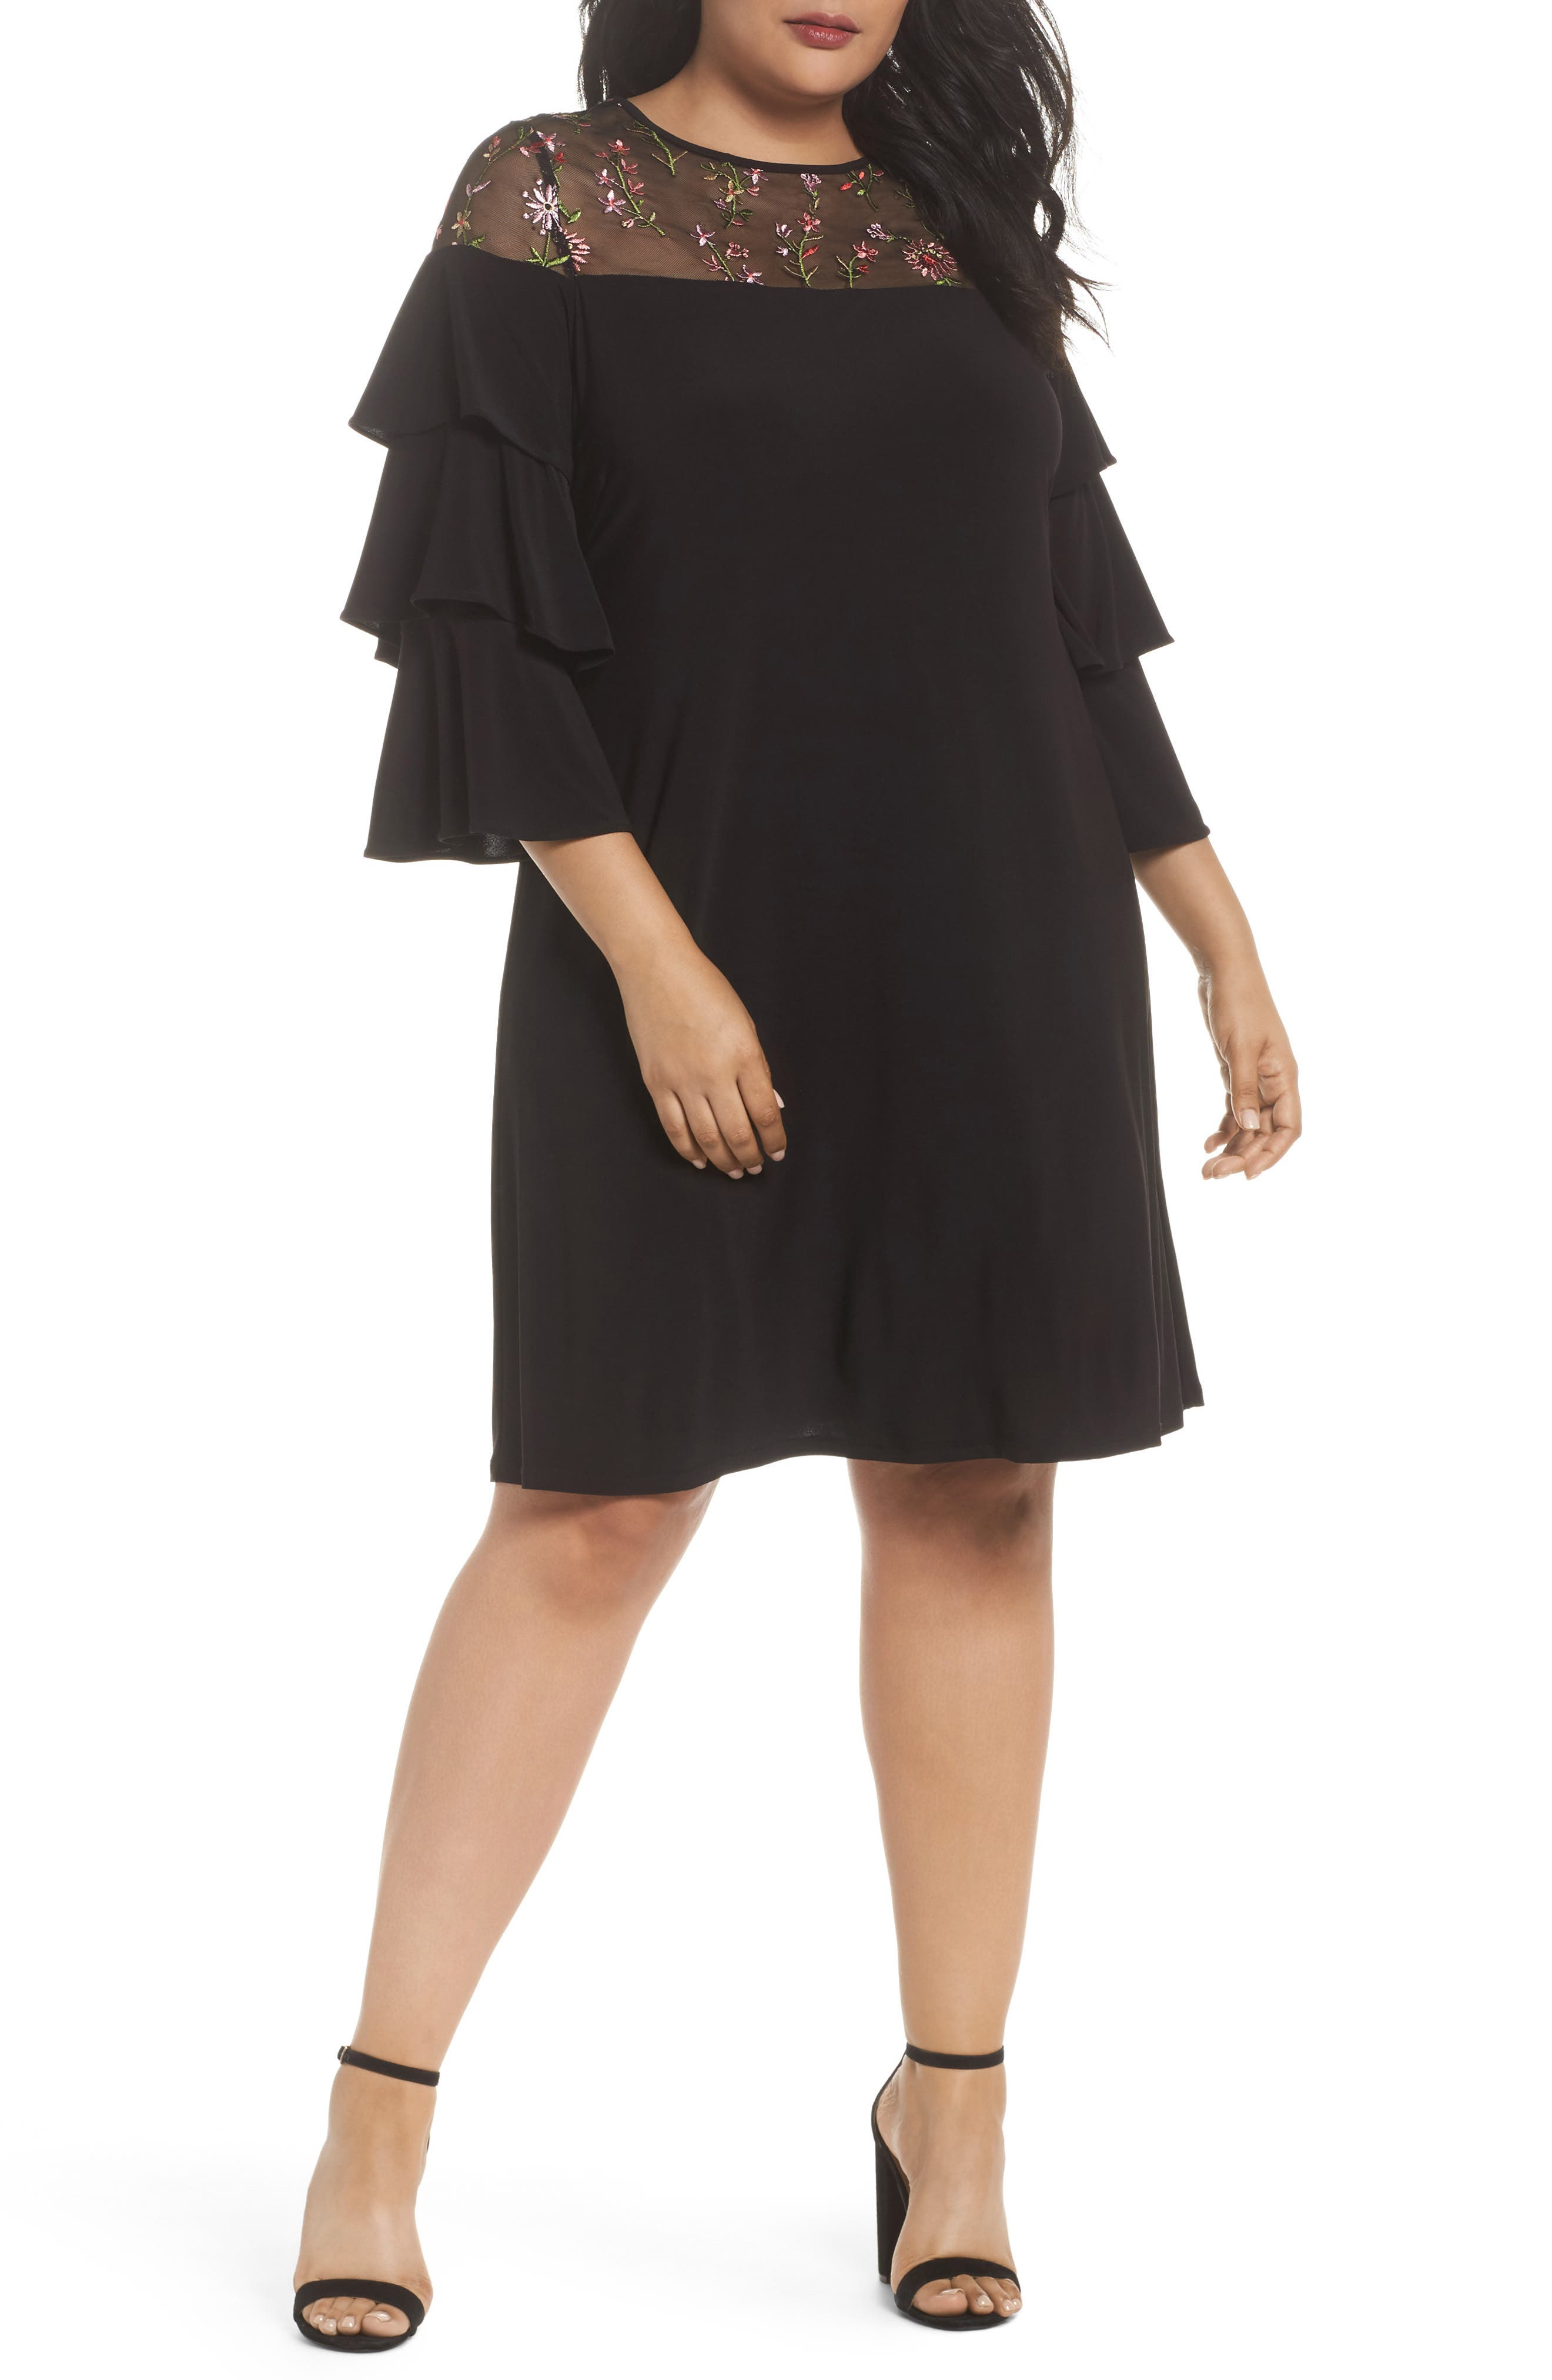 Ruffled Sleeve Embroidered Yoke A-Line Dress,                         Main,                         color, Black/ Coral